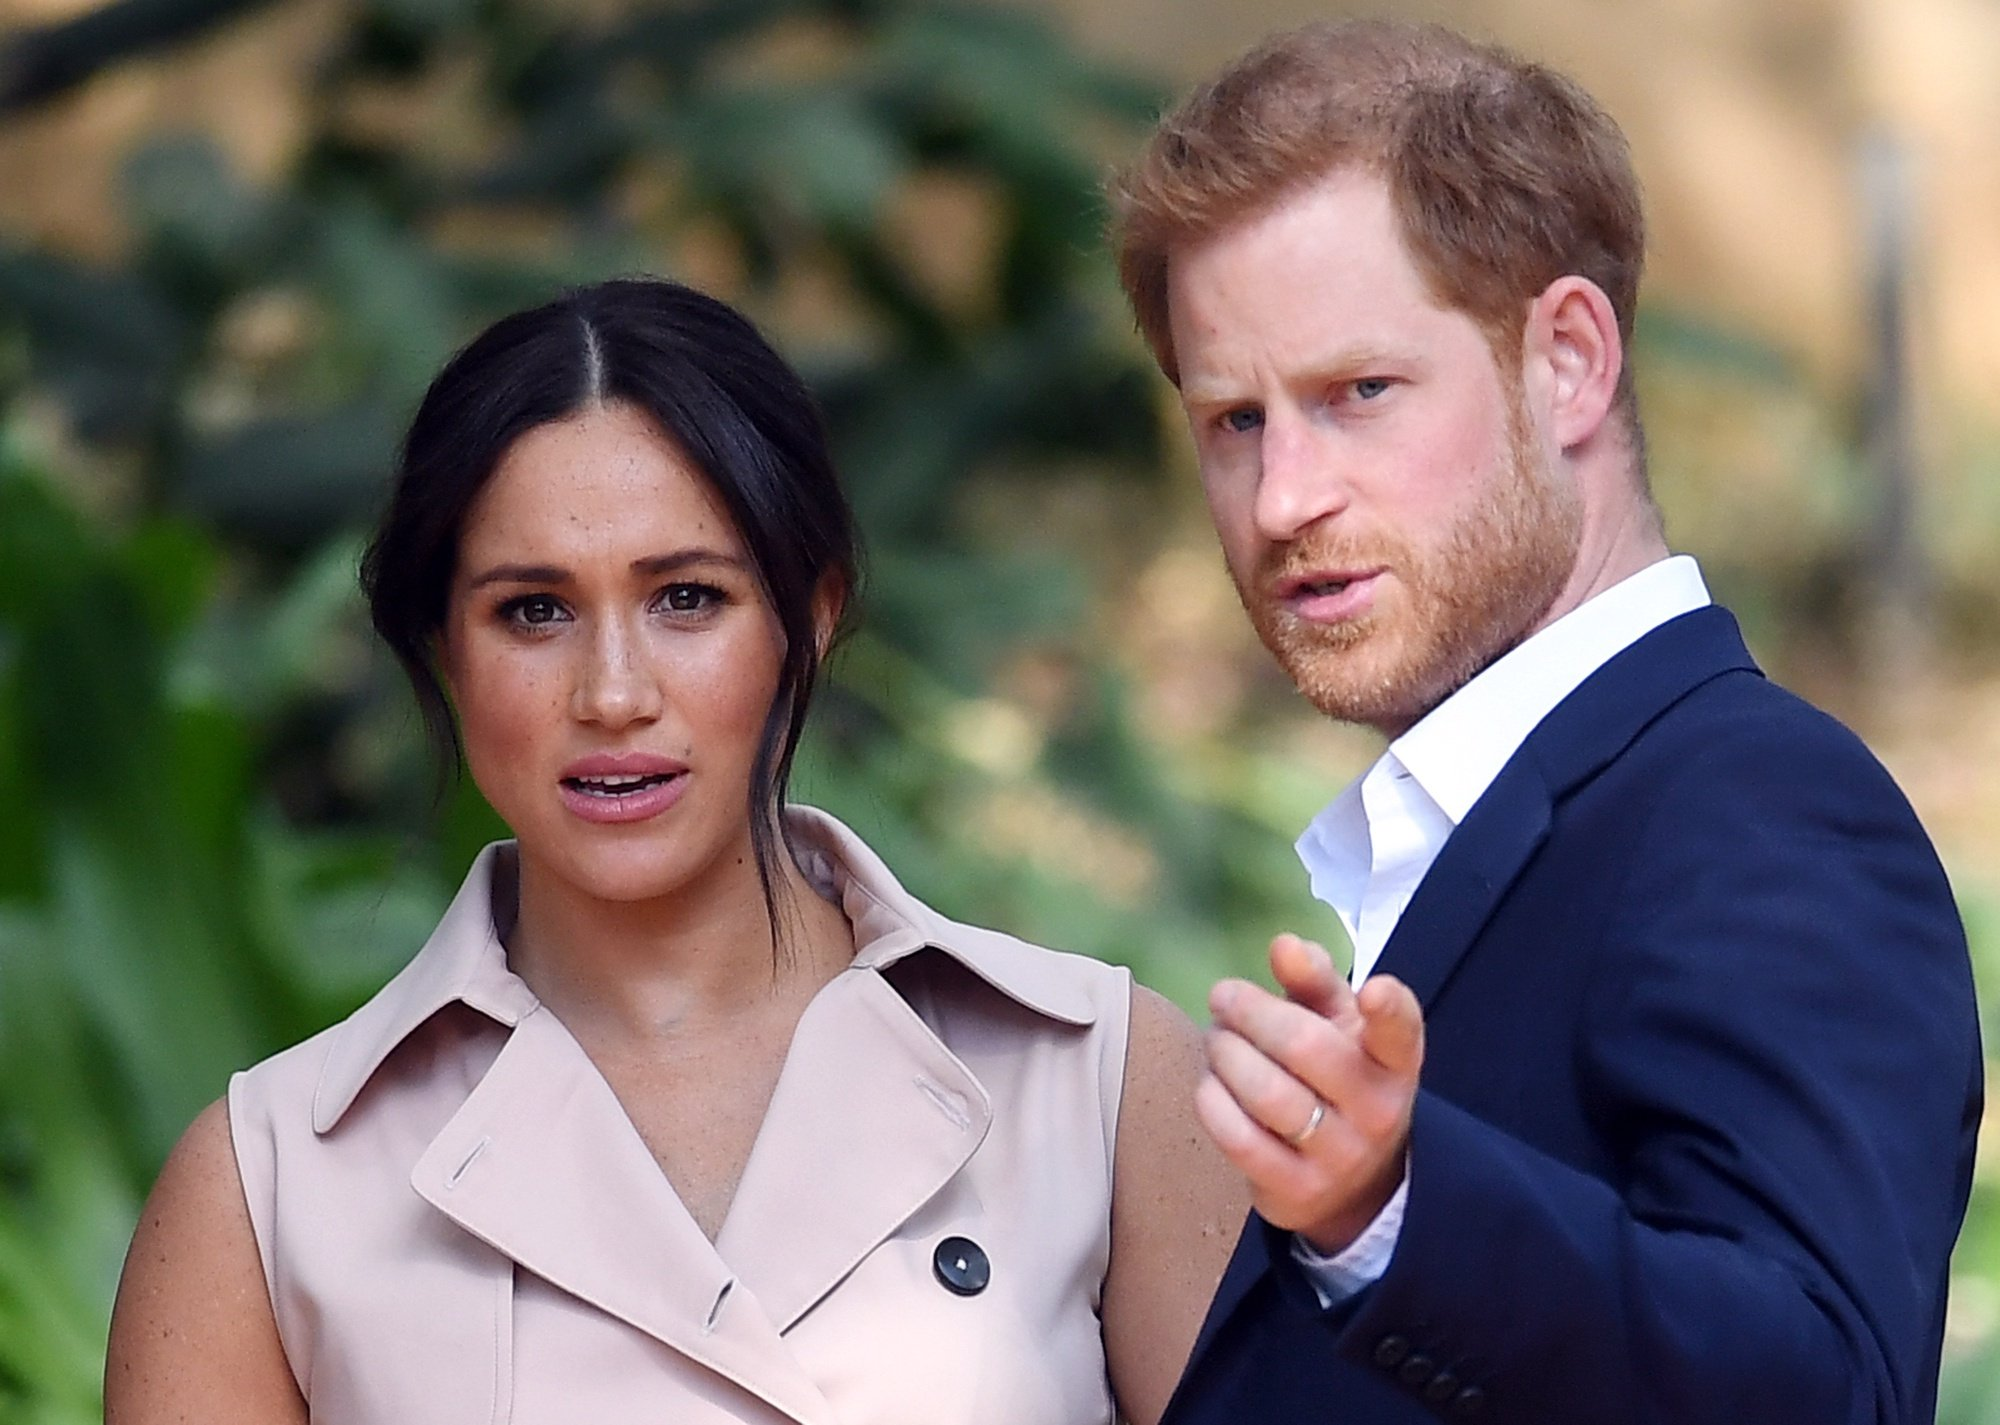 epa08395995 (FILE) Britain's Prince Harry, Duke of Sussex (R) and his wife Meghan, Duchess of Sussex attend a creative industries and business reception at the High Commissioner's residence in Johannesburg, South Africa, 02 October 2019 (reissued 01 May 2020). According to media reports on 01 May 2020, a judge at London's High Court ruled against key claims in a lawsuit brought by the Duchess of Sussex against The Mail on Sunday. The Duchess of Sussex is suing Associated Newspapers, the British tabloid's parent company, over privacy infringement and copyright breach after the Mail on Sunday published a private letter she sent to her father, Thomas Markle, berfore her wedding to Prince Harry.  EPA/FACUNDO ARRIZABALAGA *** Local Caption *** 55752202